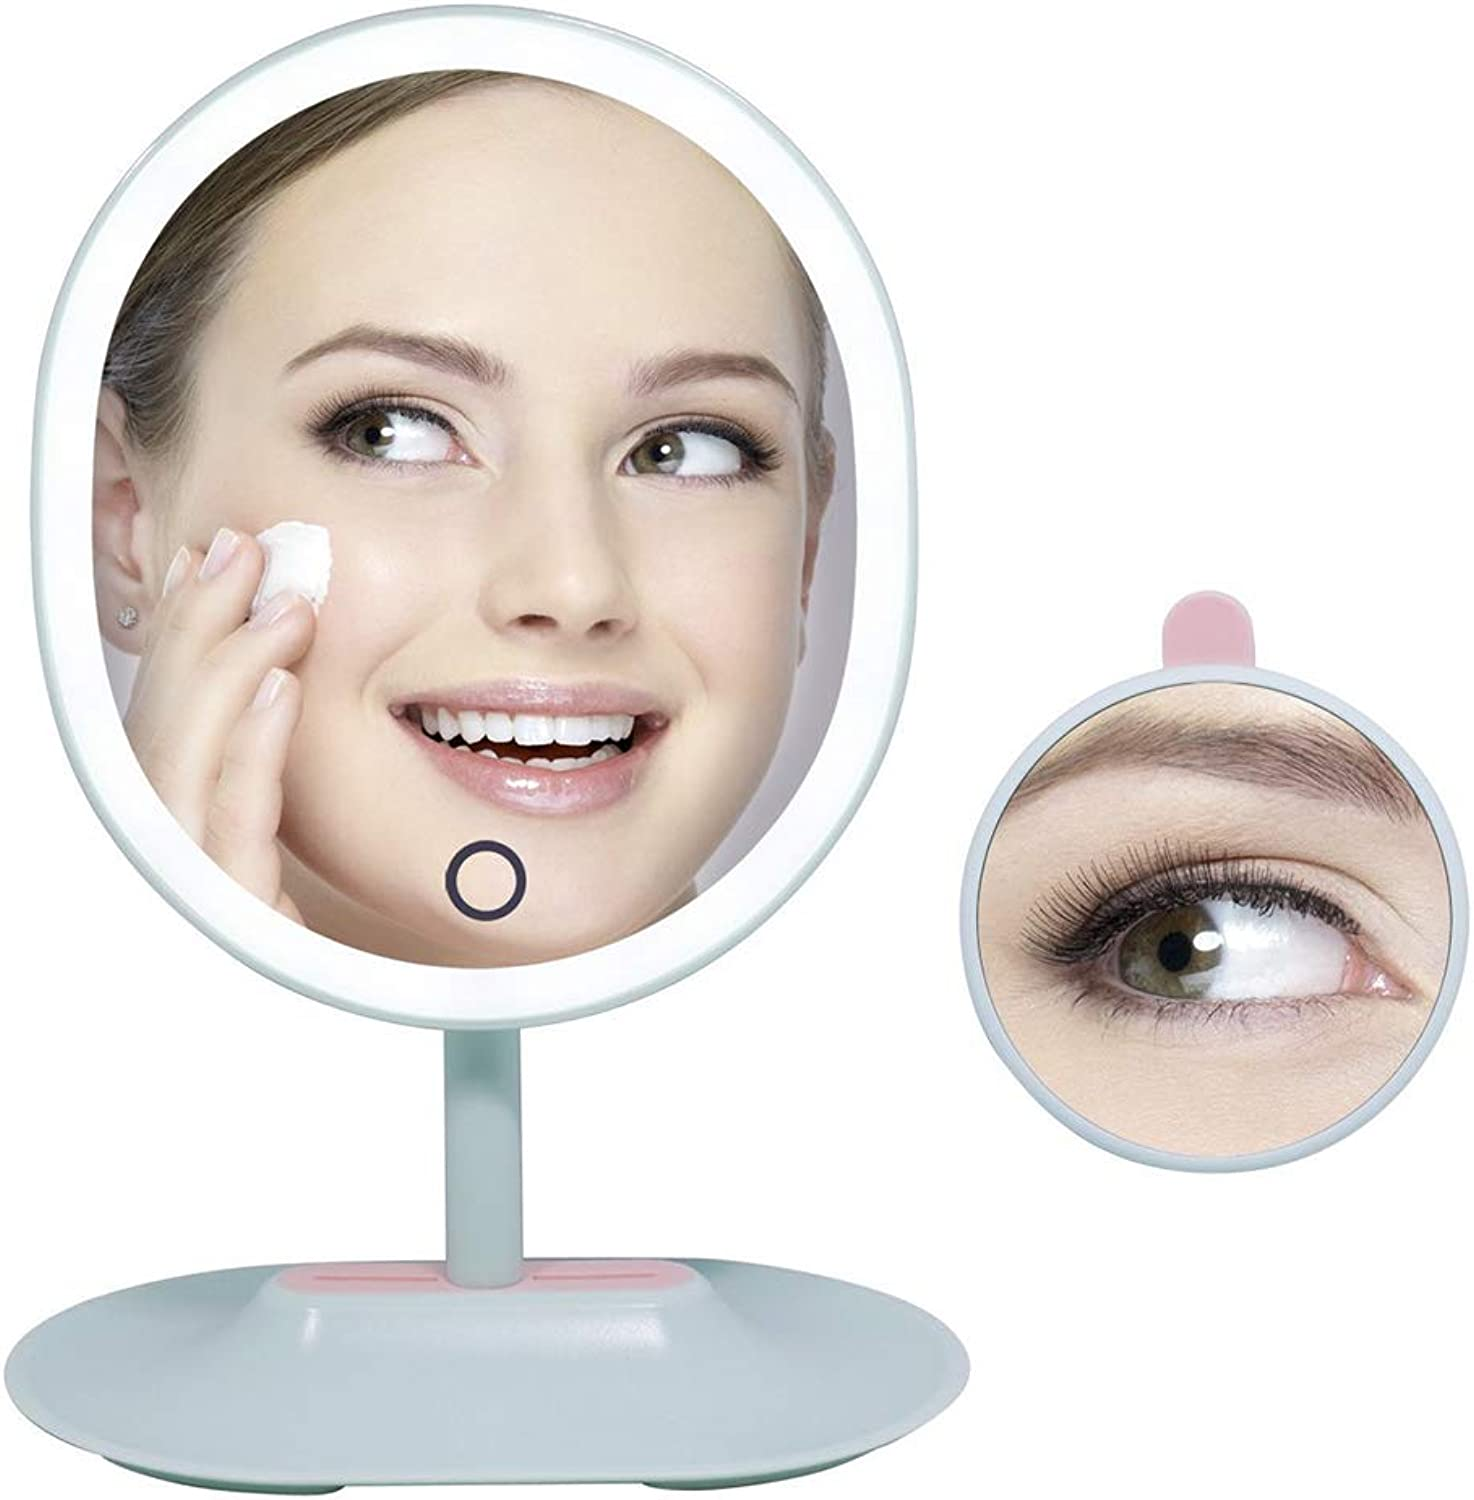 DSstyles Fascinate Desktop LED Makeup Mirror Adjustable Lens Magnifying Glass Green